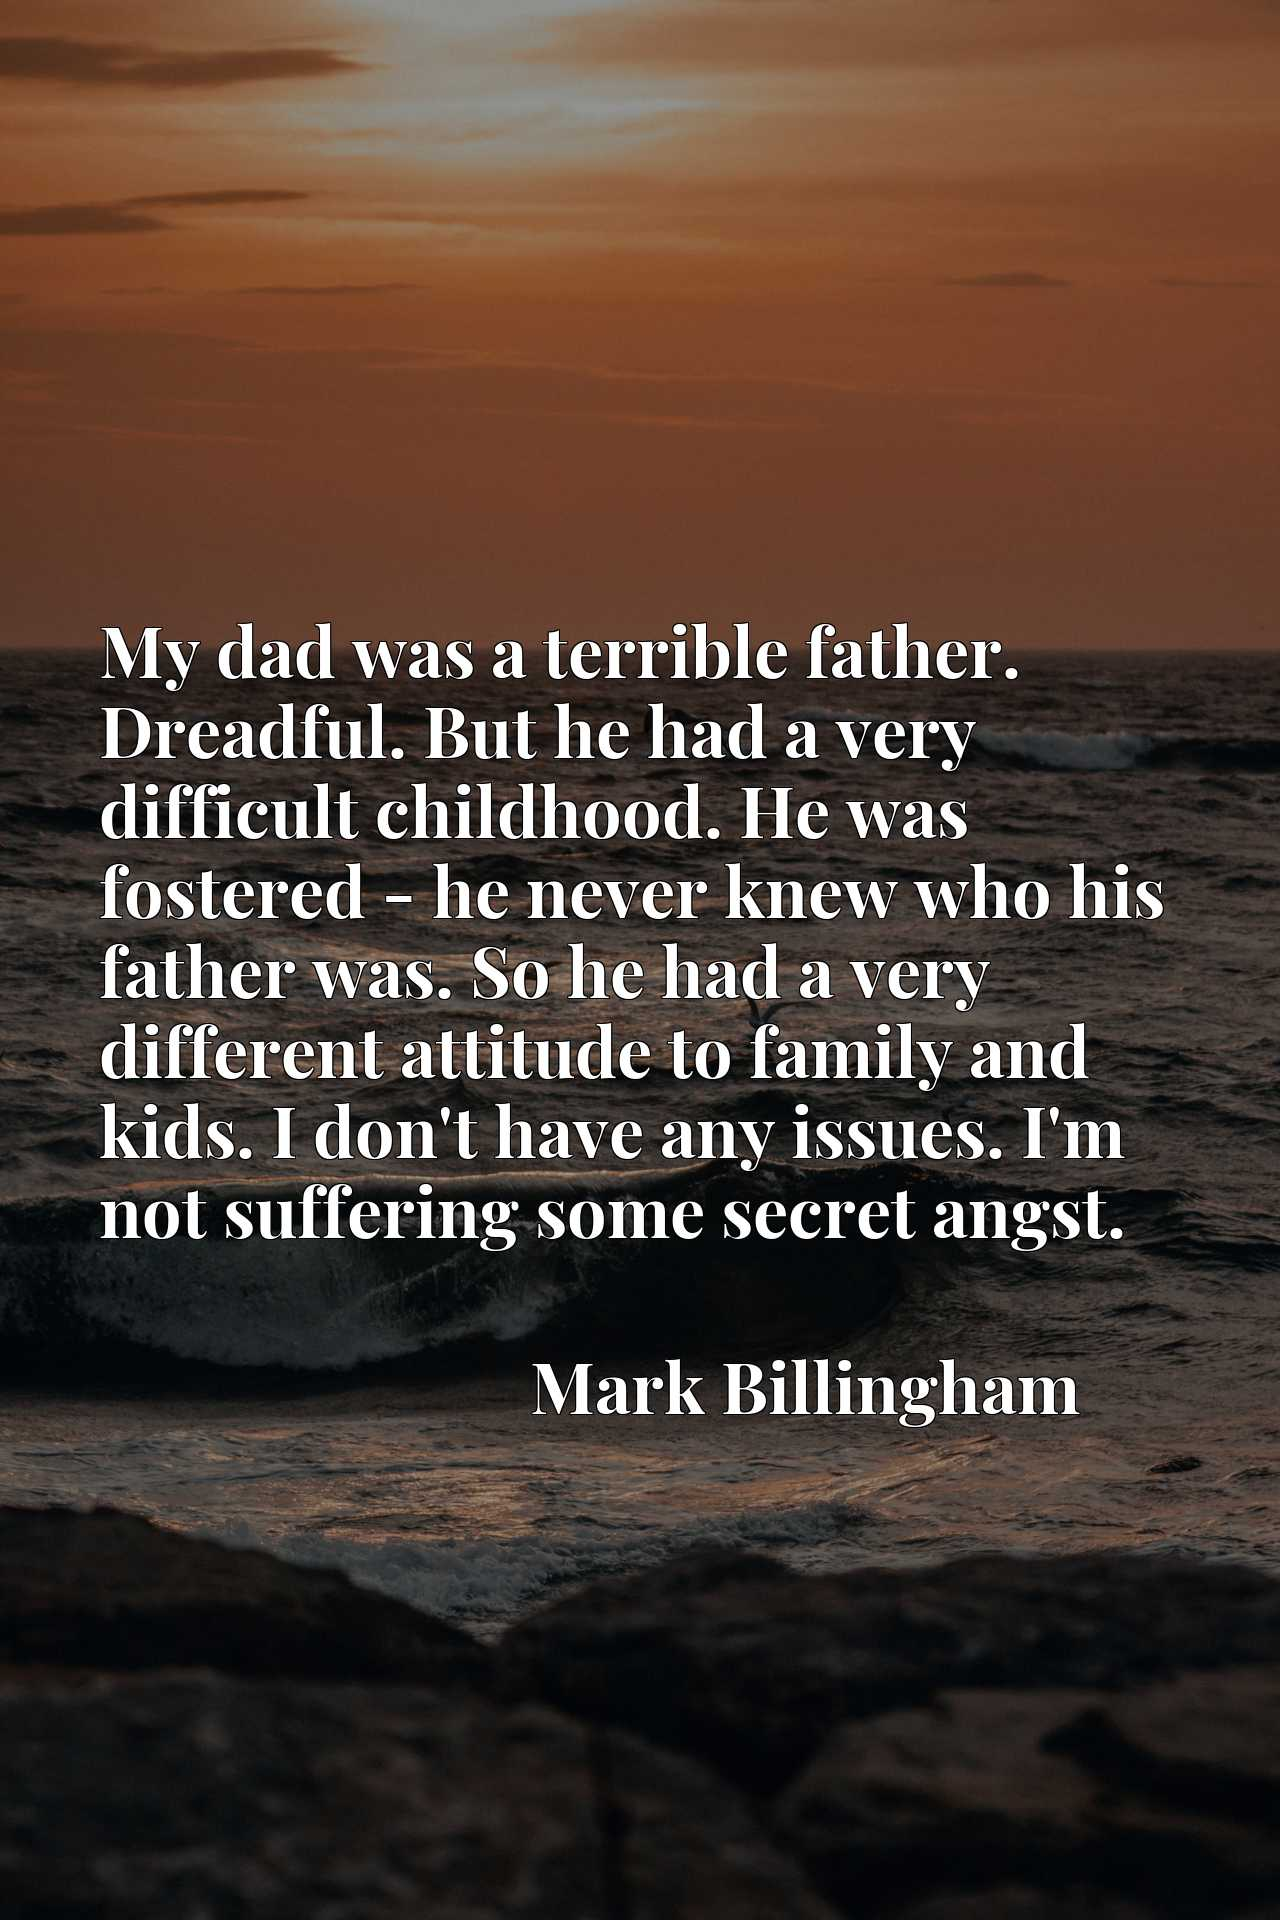 My dad was a terrible father. Dreadful. But he had a very difficult childhood. He was fostered - he never knew who his father was. So he had a very different attitude to family and kids. I don't have any issues. I'm not suffering some secret angst.